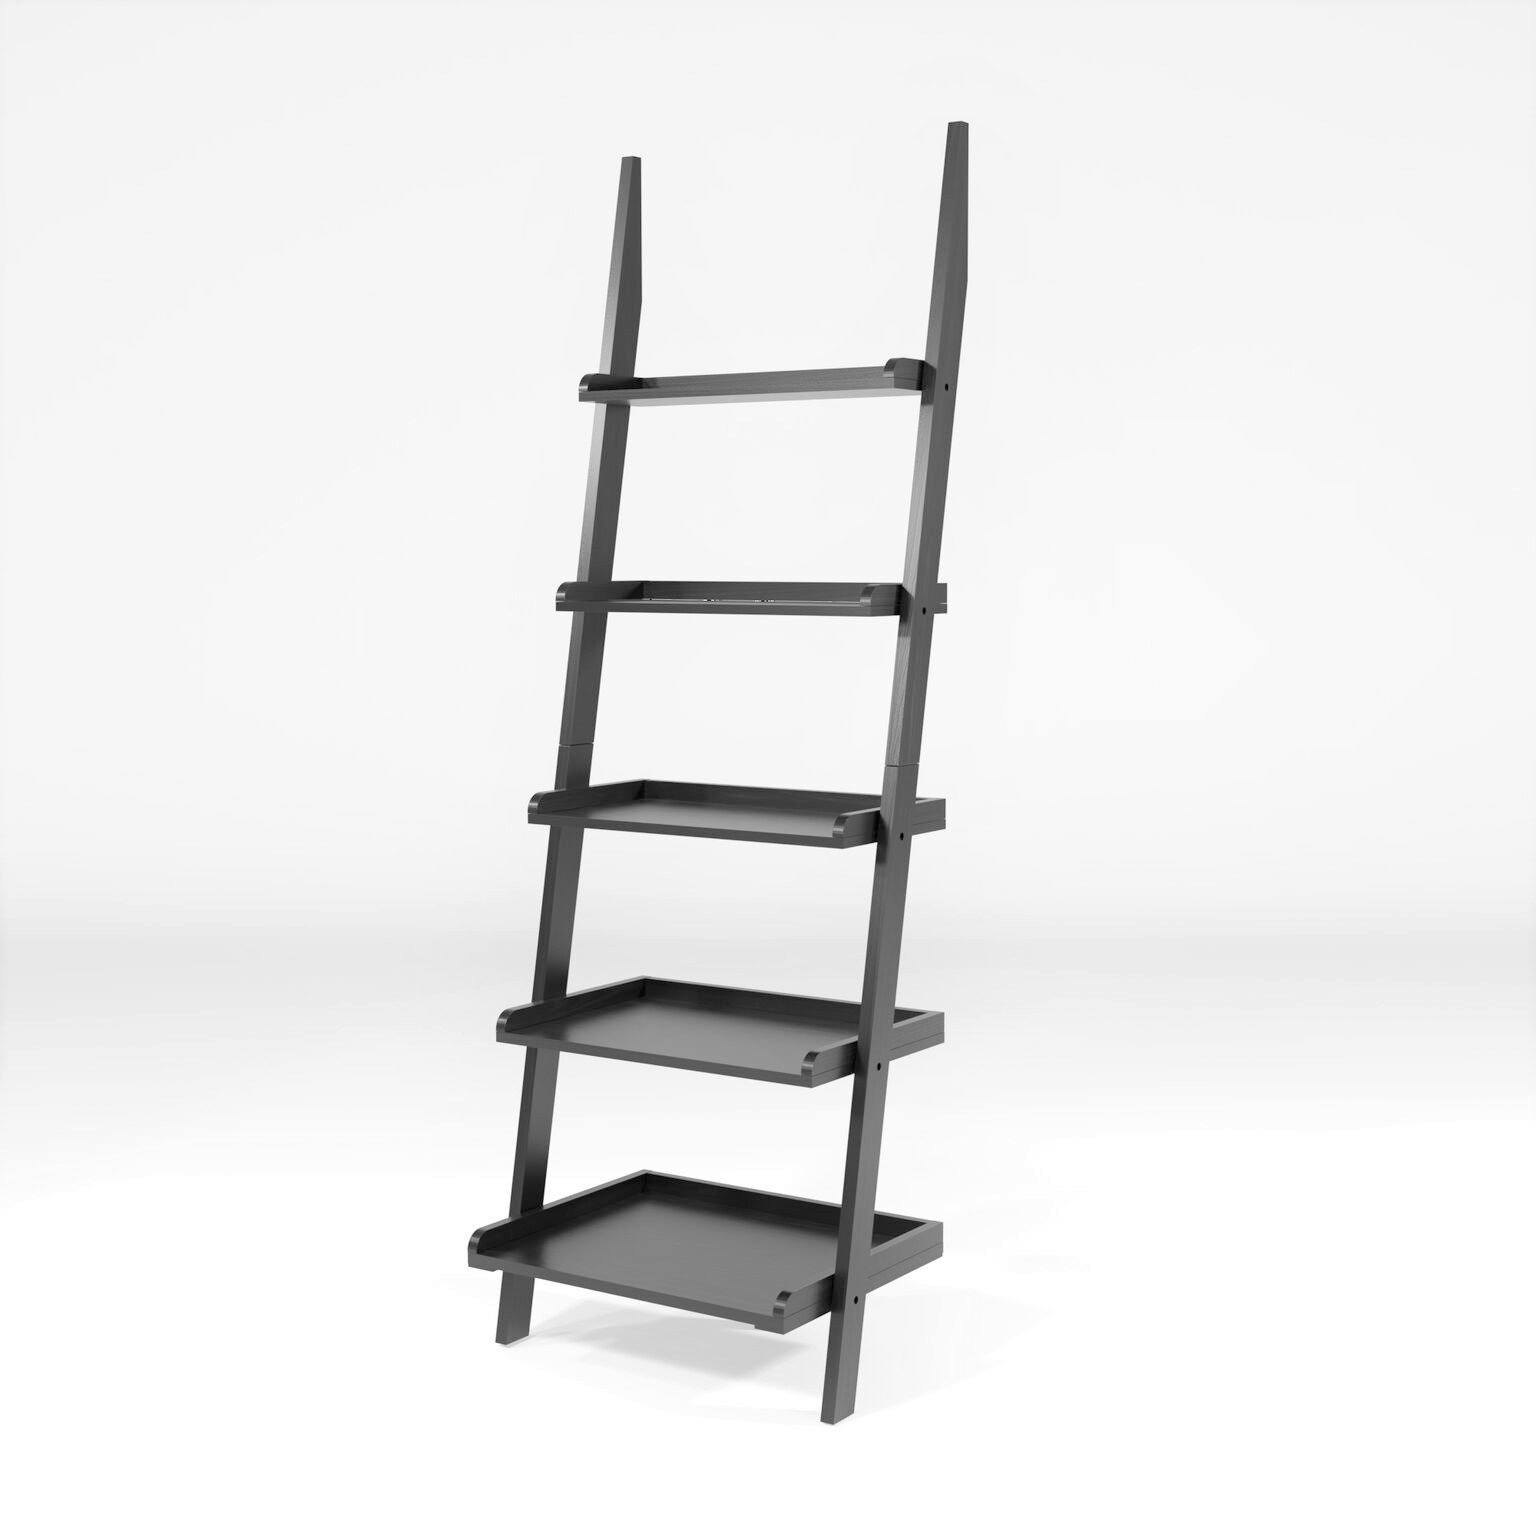 Muire 5-Tier Ladder Display Stand Black Furniture Enitial Lab